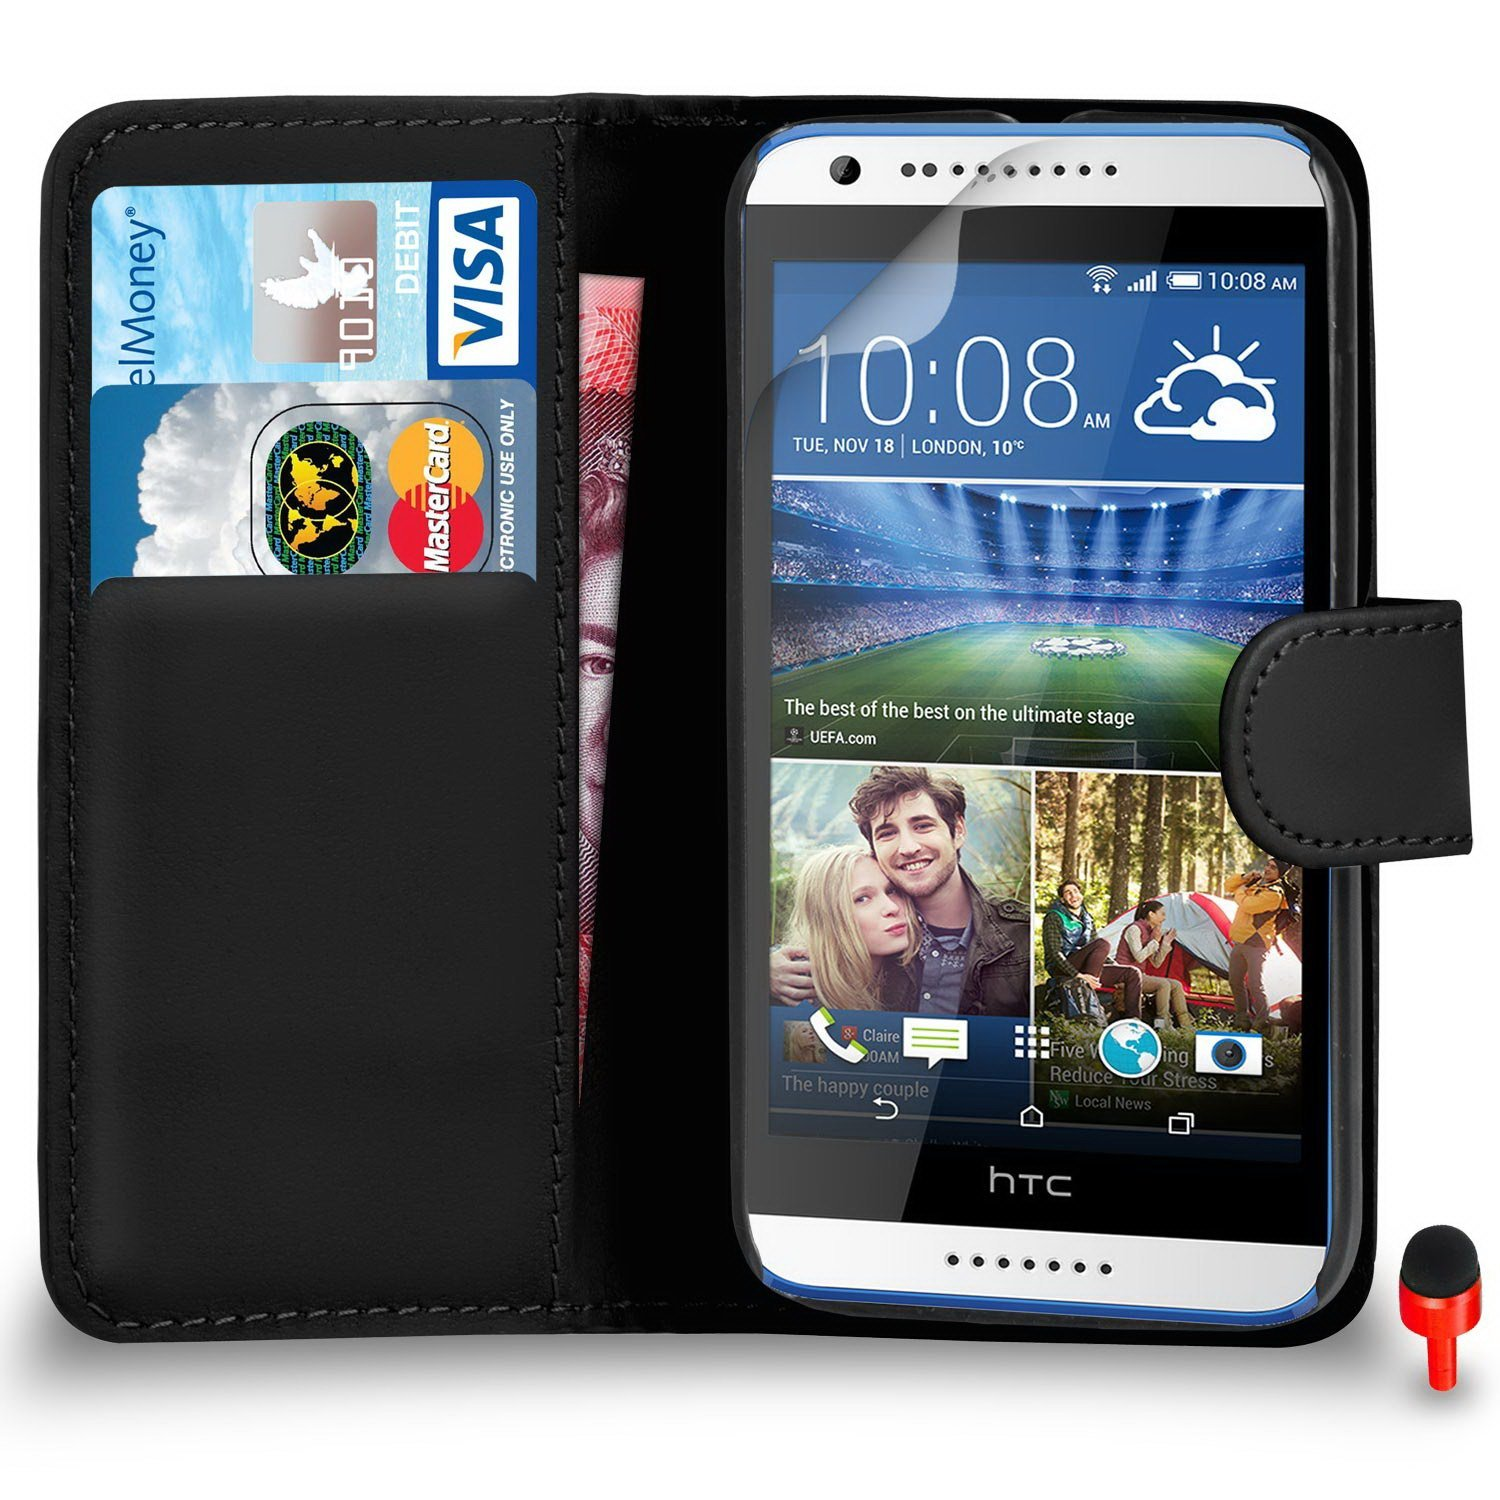 HTC Desire 620 Premium Leather Black Wallet Flip Case Cover Pouch + Screen Protector & Polishing Cloth SVL0 BY SHUKAN®, (WALLET BLACK)